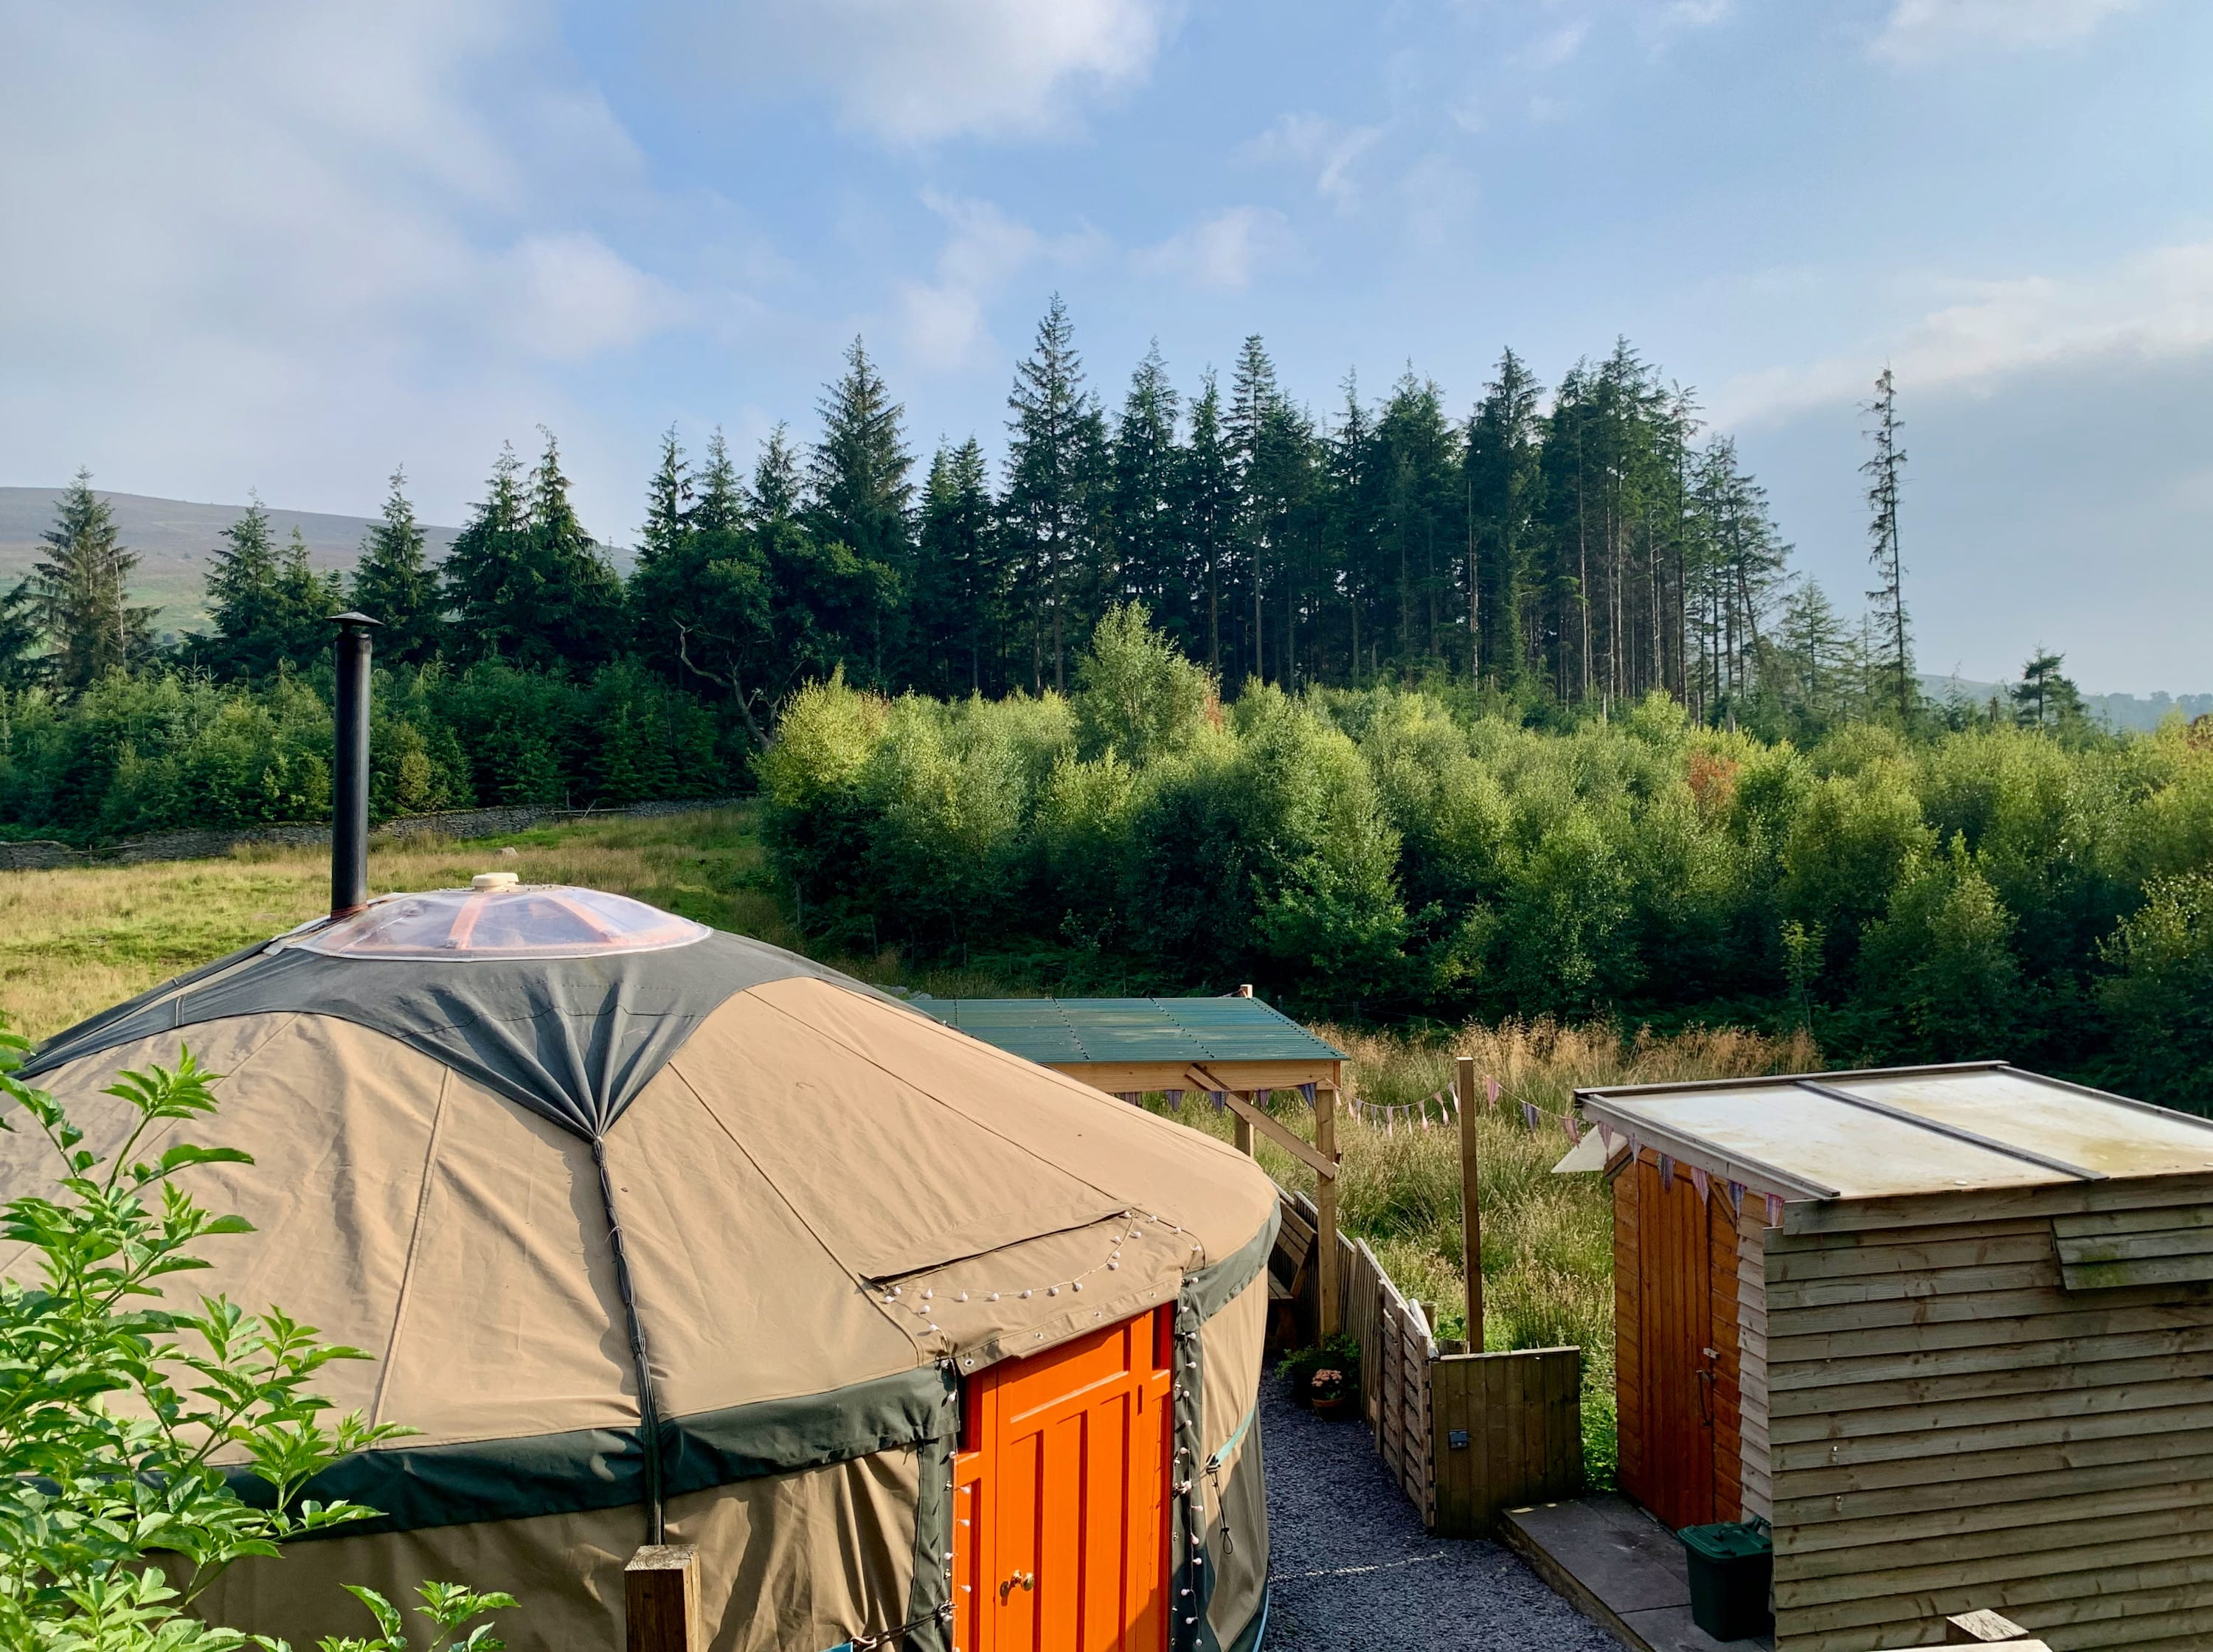 Ty crwn mawr yurt outside new cover 3 off grid sustainable eco glampsite and glamping